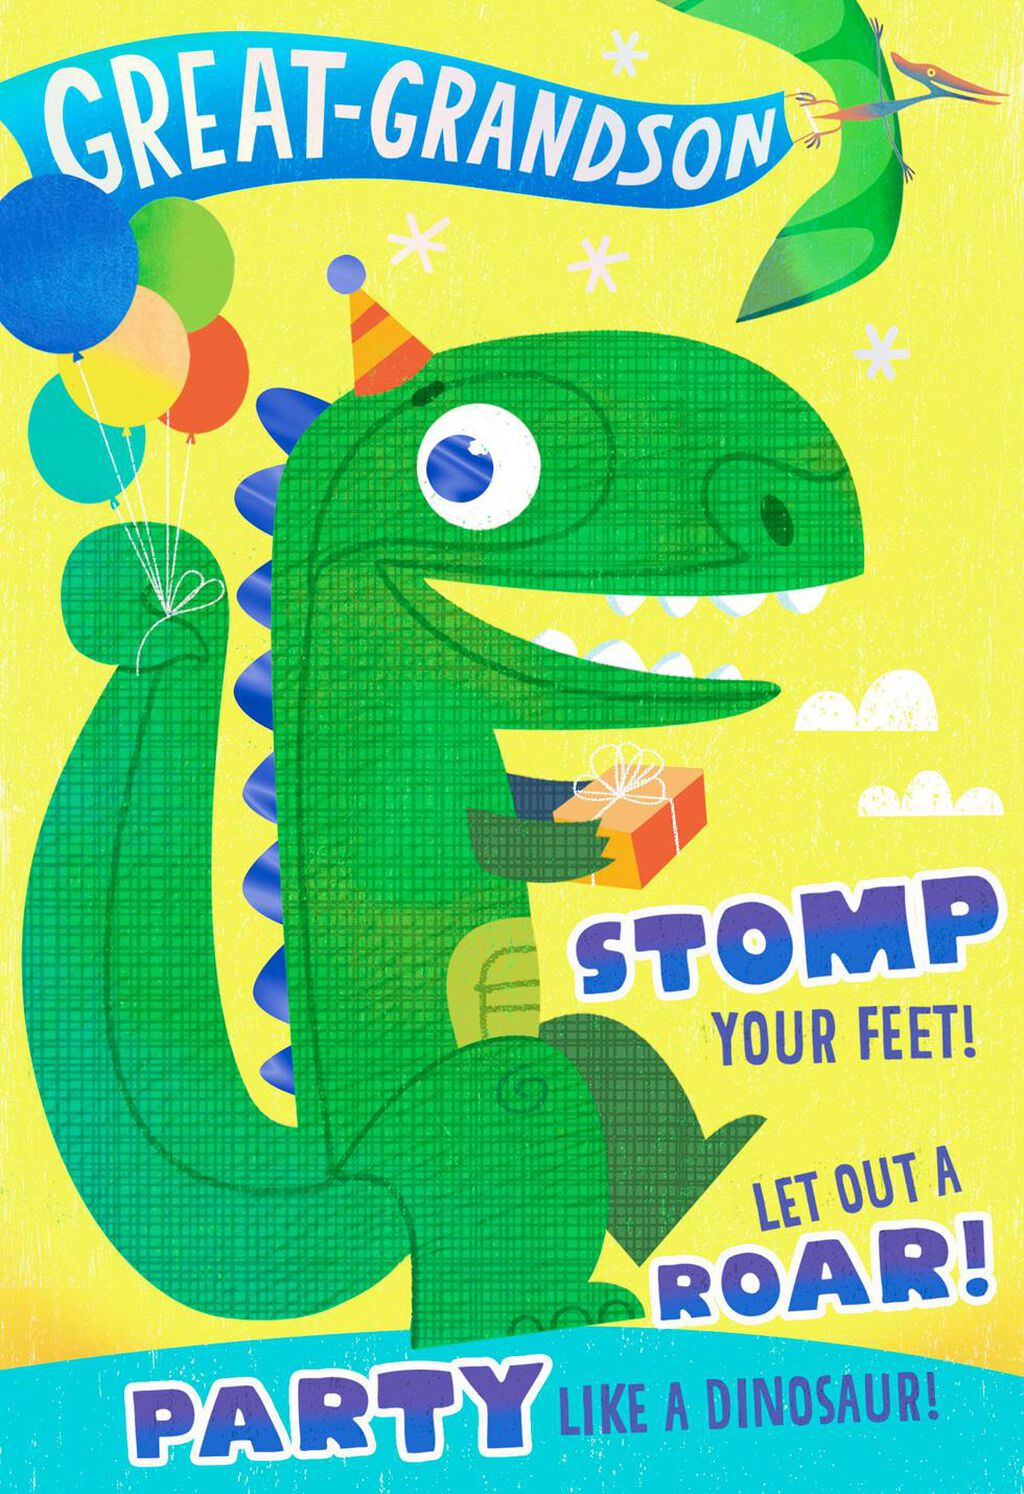 Party Like A Dinosaur Birthday Card For Great Grandson